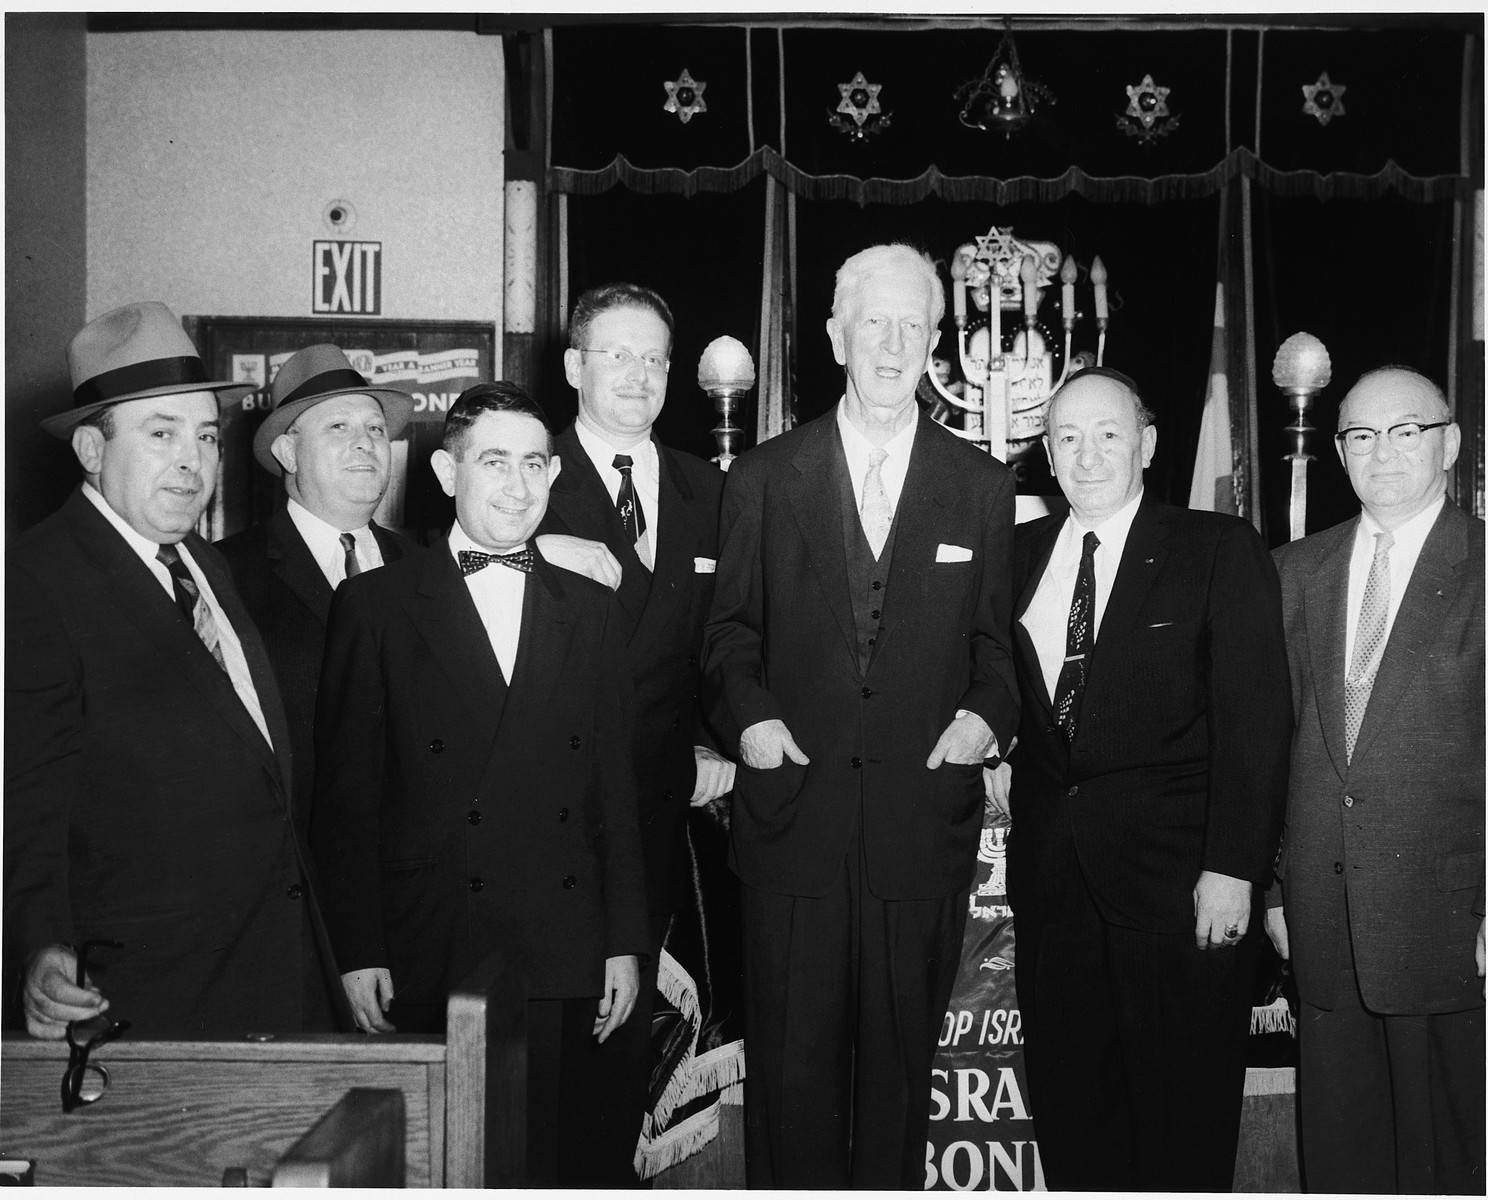 U.S. Ambassador to Israel James G. McDonald (center), poses with a group of men at a State of Israel bonds drive at a synagogue in the U.S.